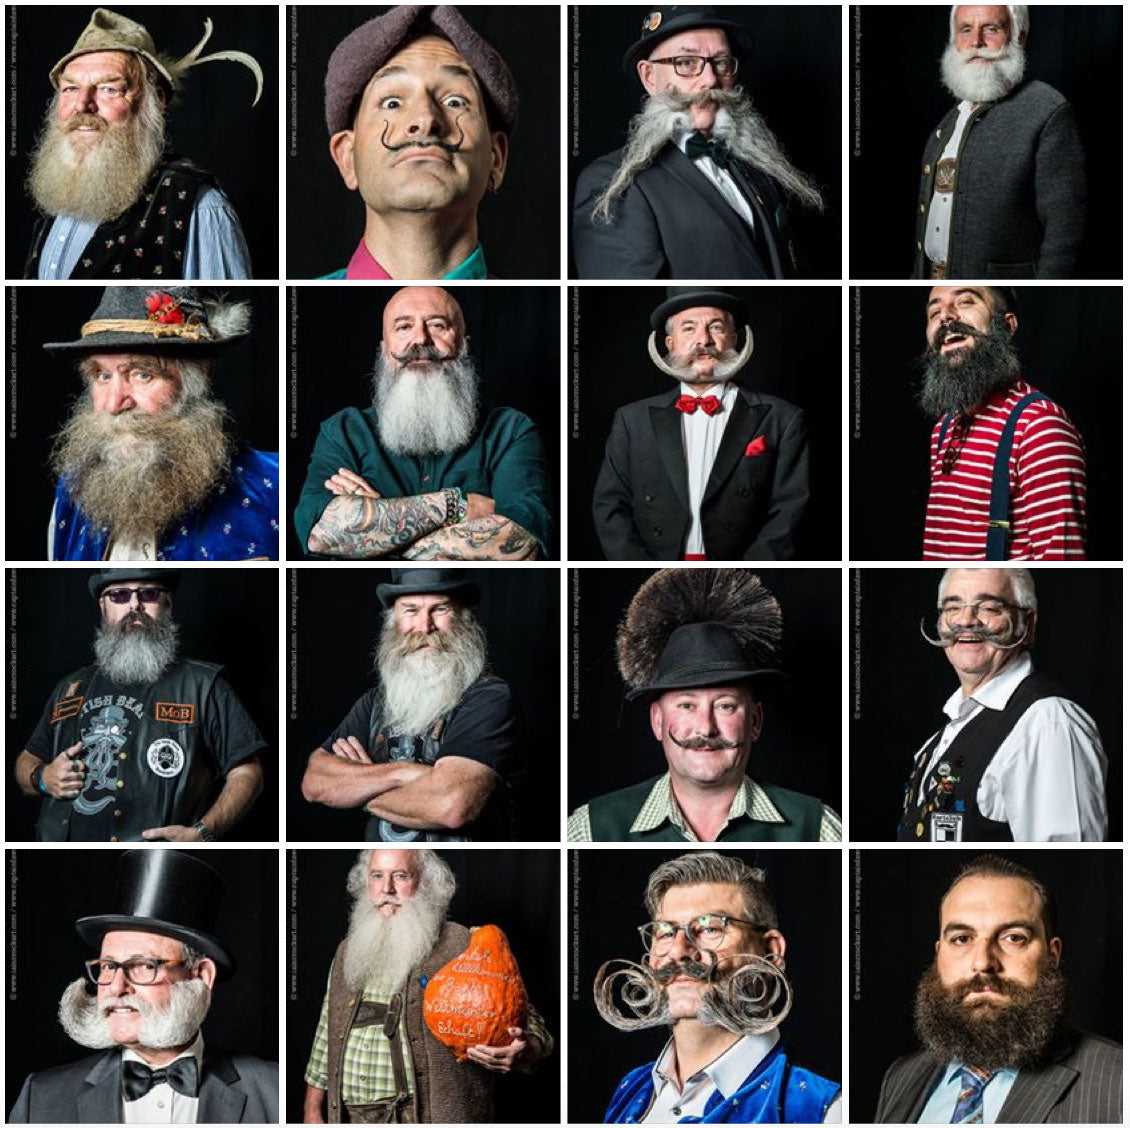 World Beard & Moustache Championships 2015